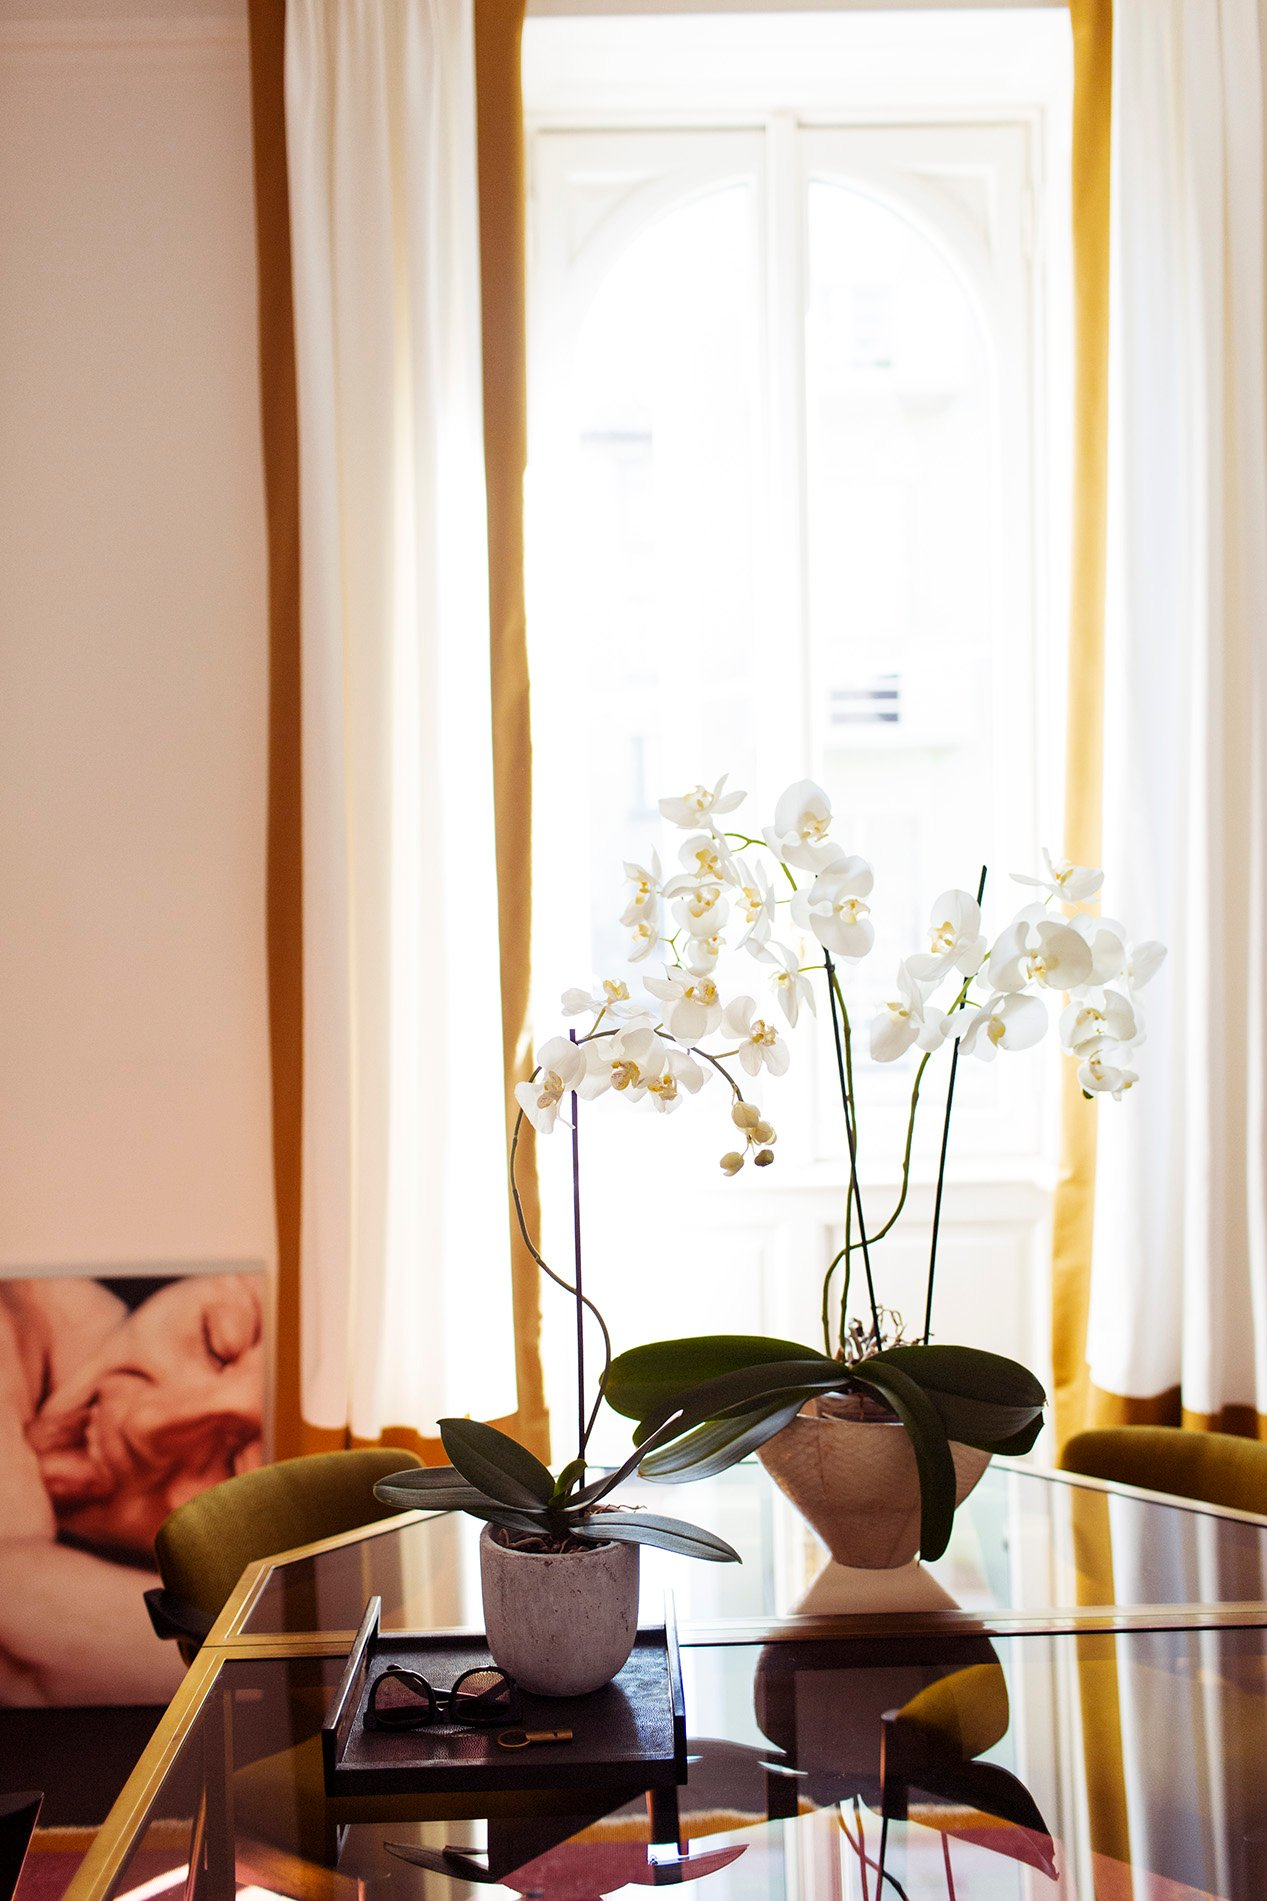 Best Kitchen Gallery: Andrea Pompilio Fashion Designer At Home And His Studio In Milan of Fashion Designer Homes  on rachelxblog.com